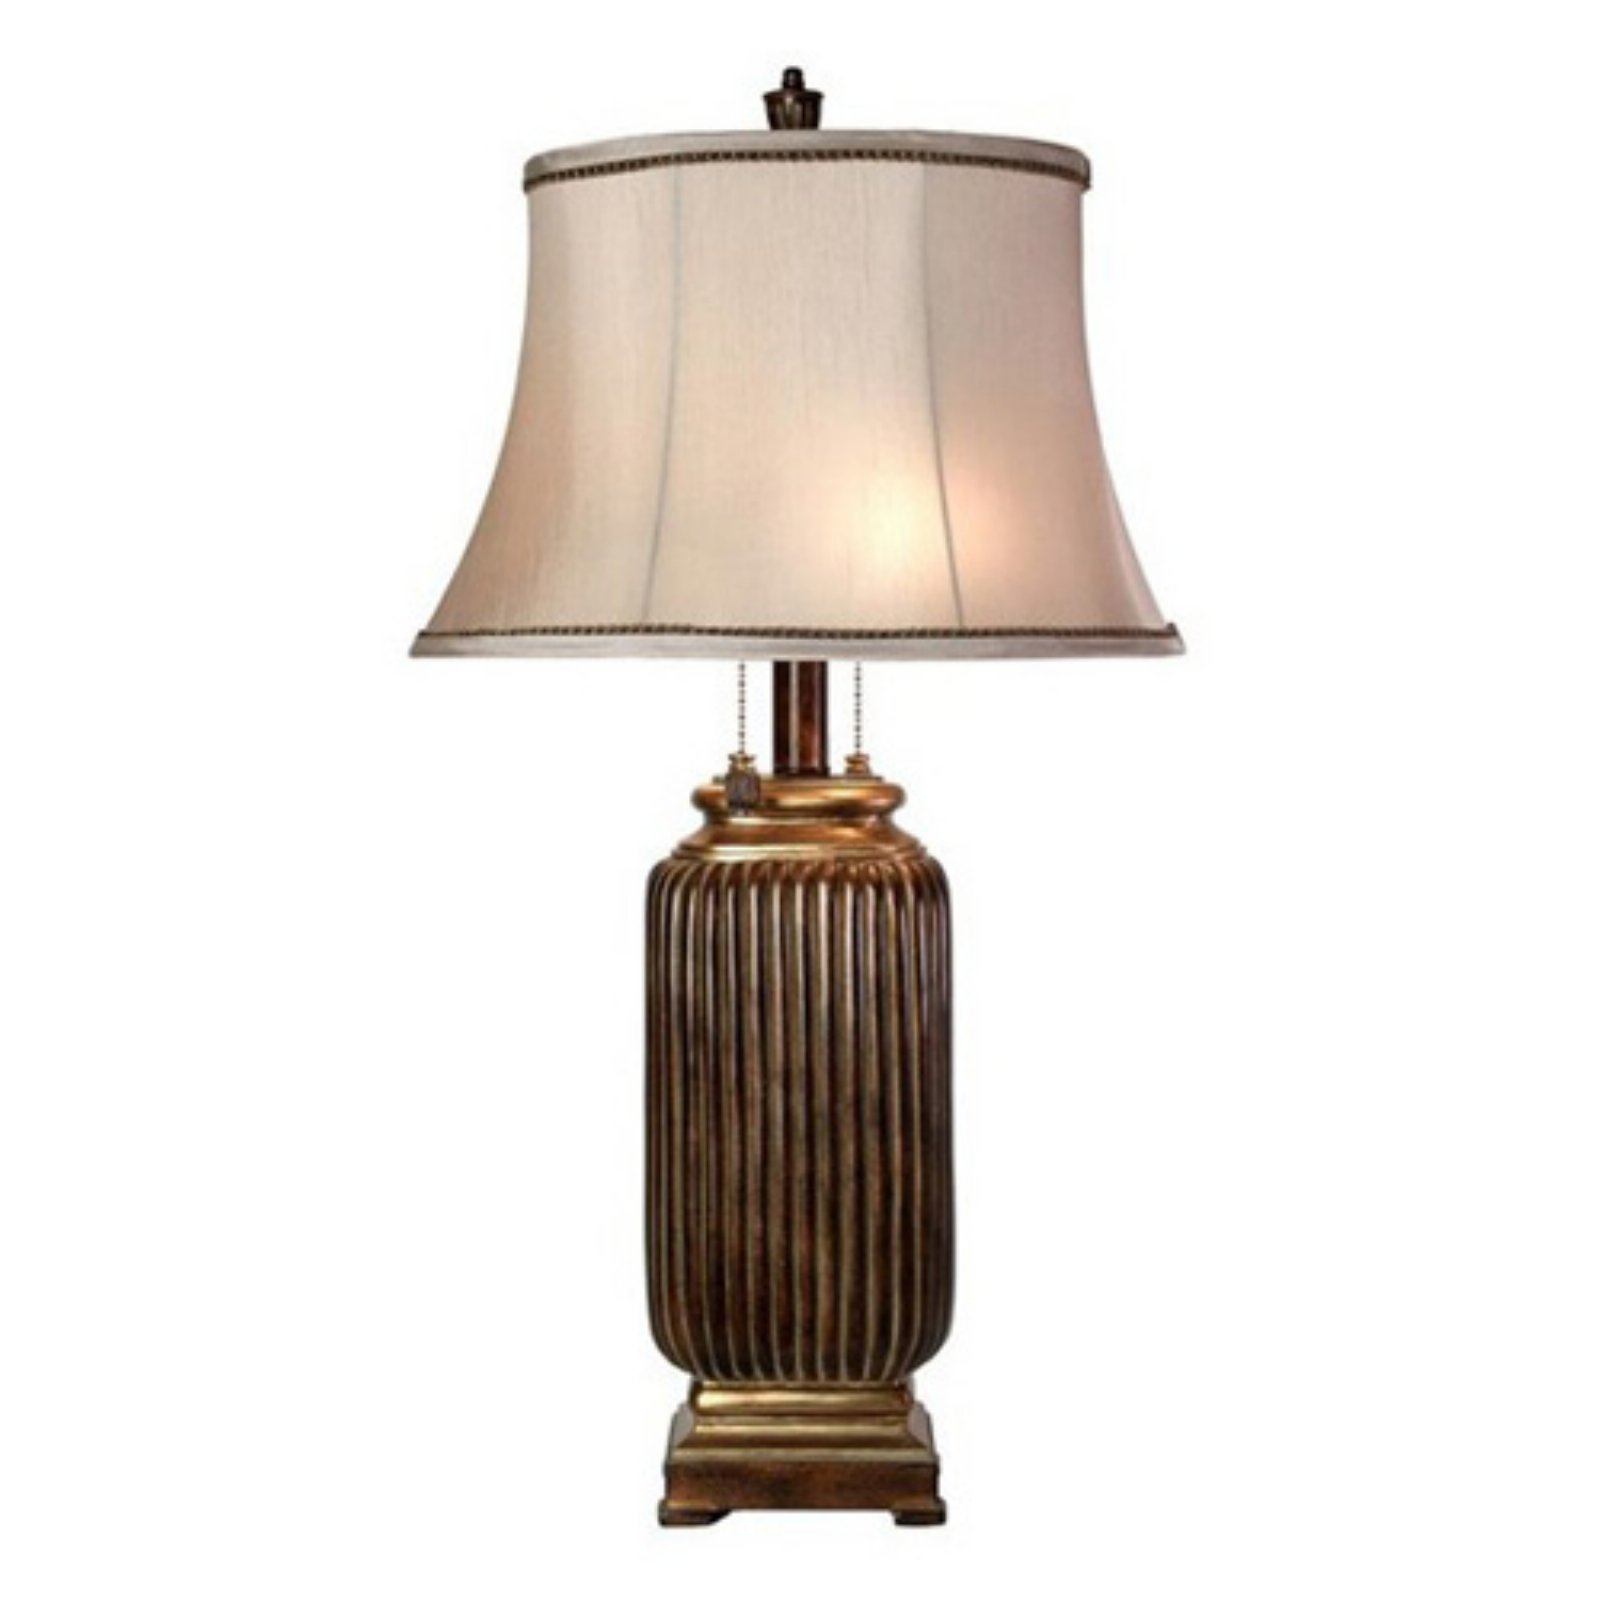 Incroyable StyleCraft Winthrop II Finish Table Lamp   Walmart.com